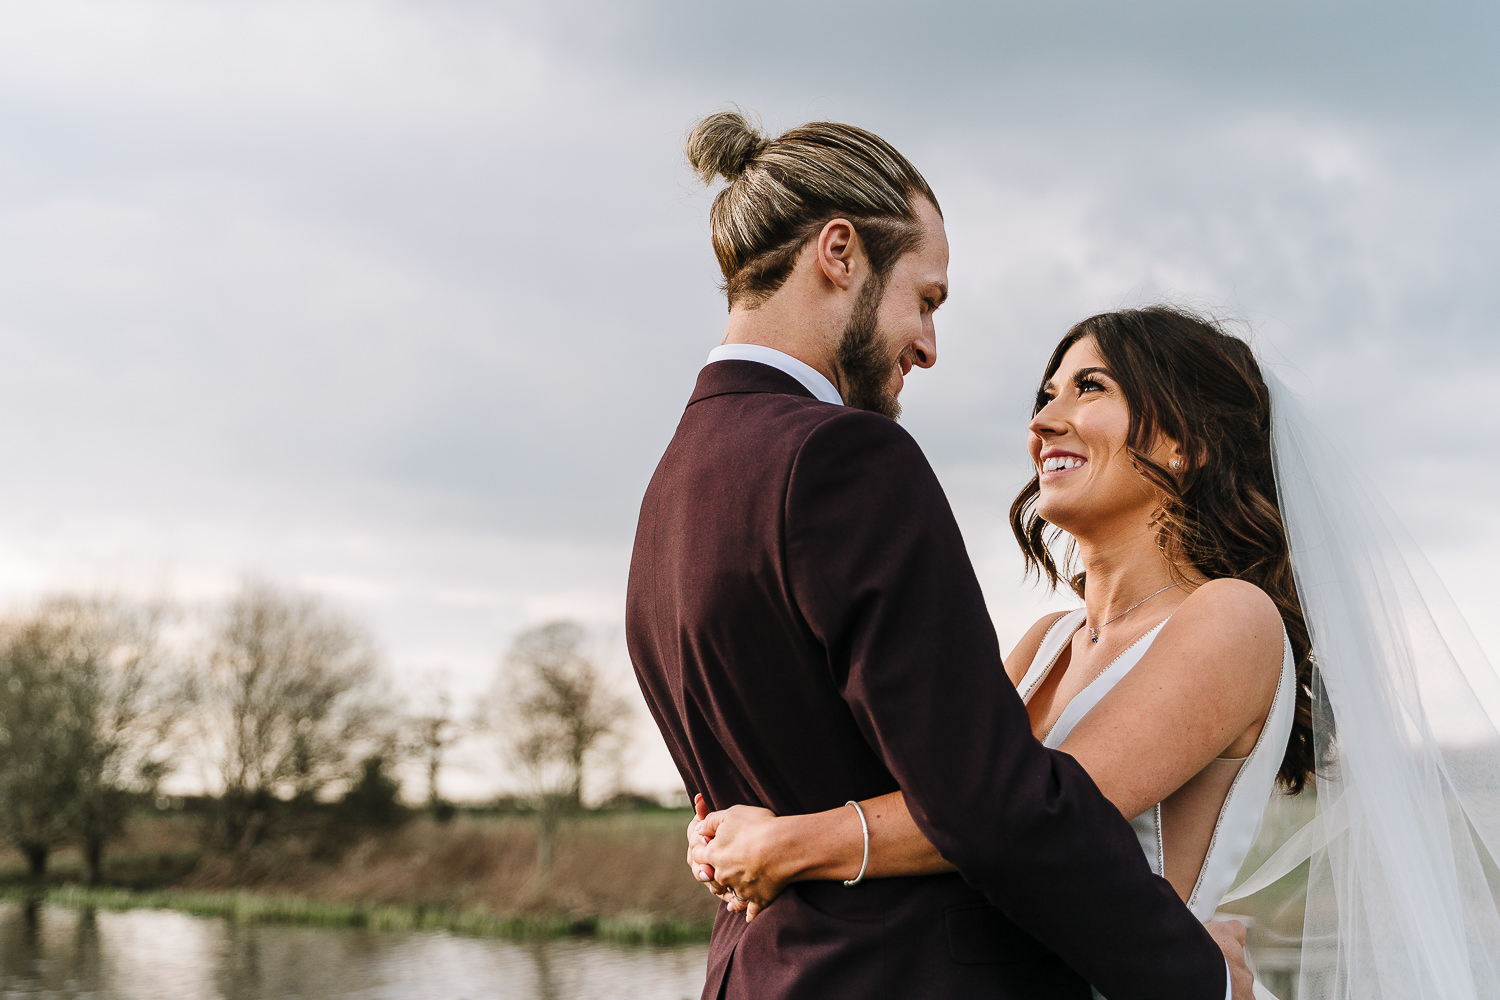 A photo of the bride and groom by the lake in lovely light